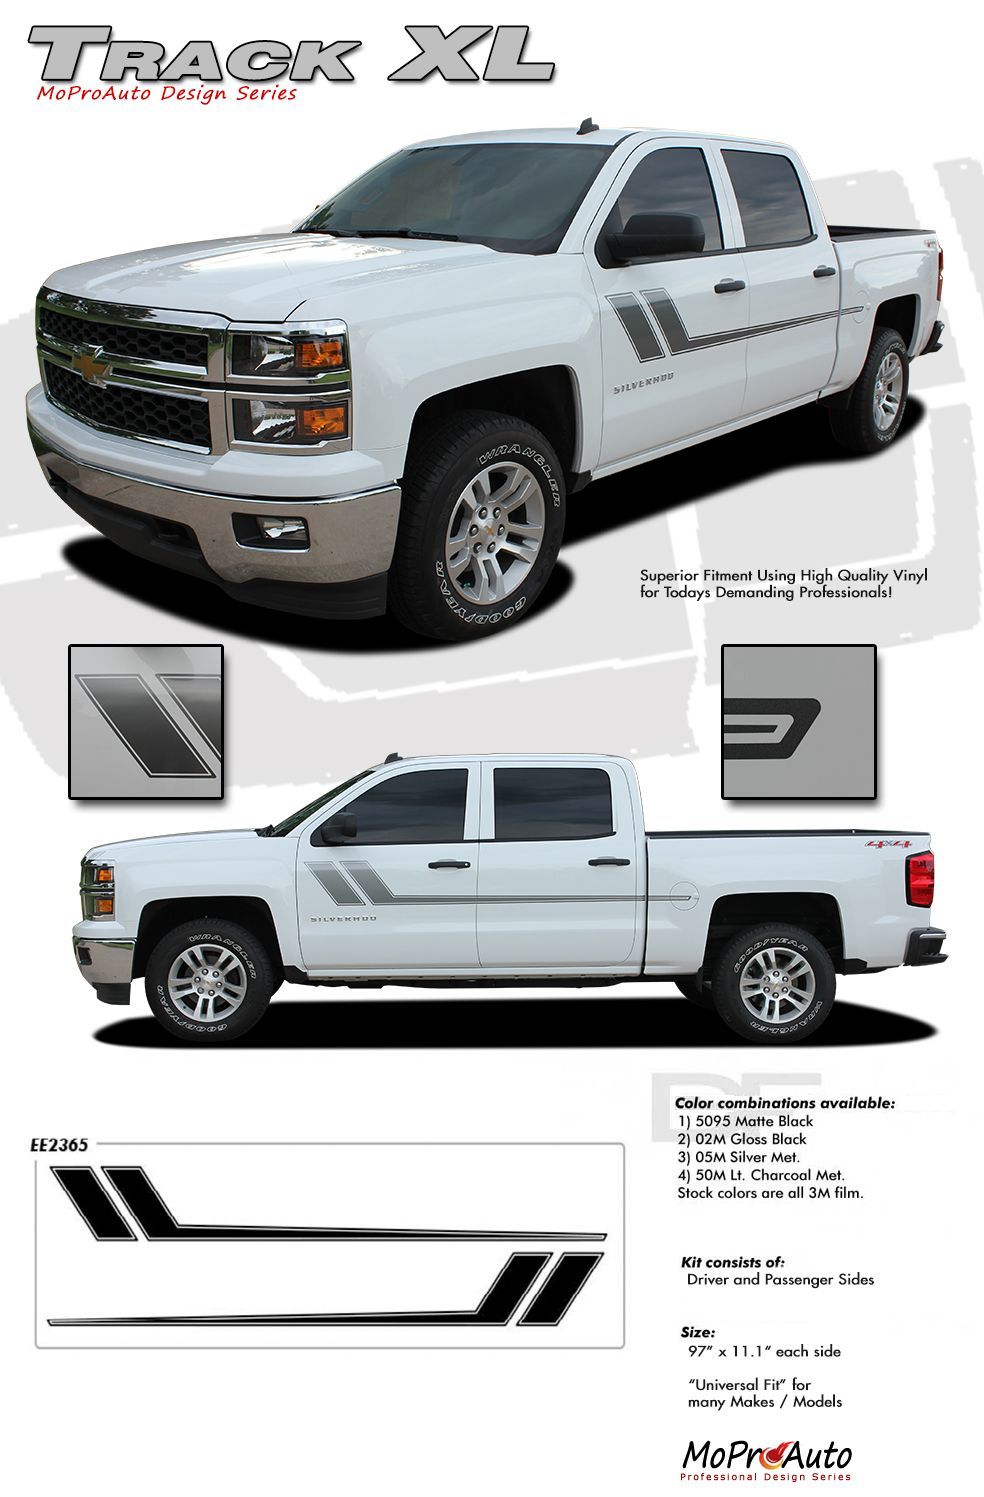 Gmc sierra and chevy silverado vinyl graphics decals and stripes kits professional style vinyl graphics kit pre cut and designed ready to install